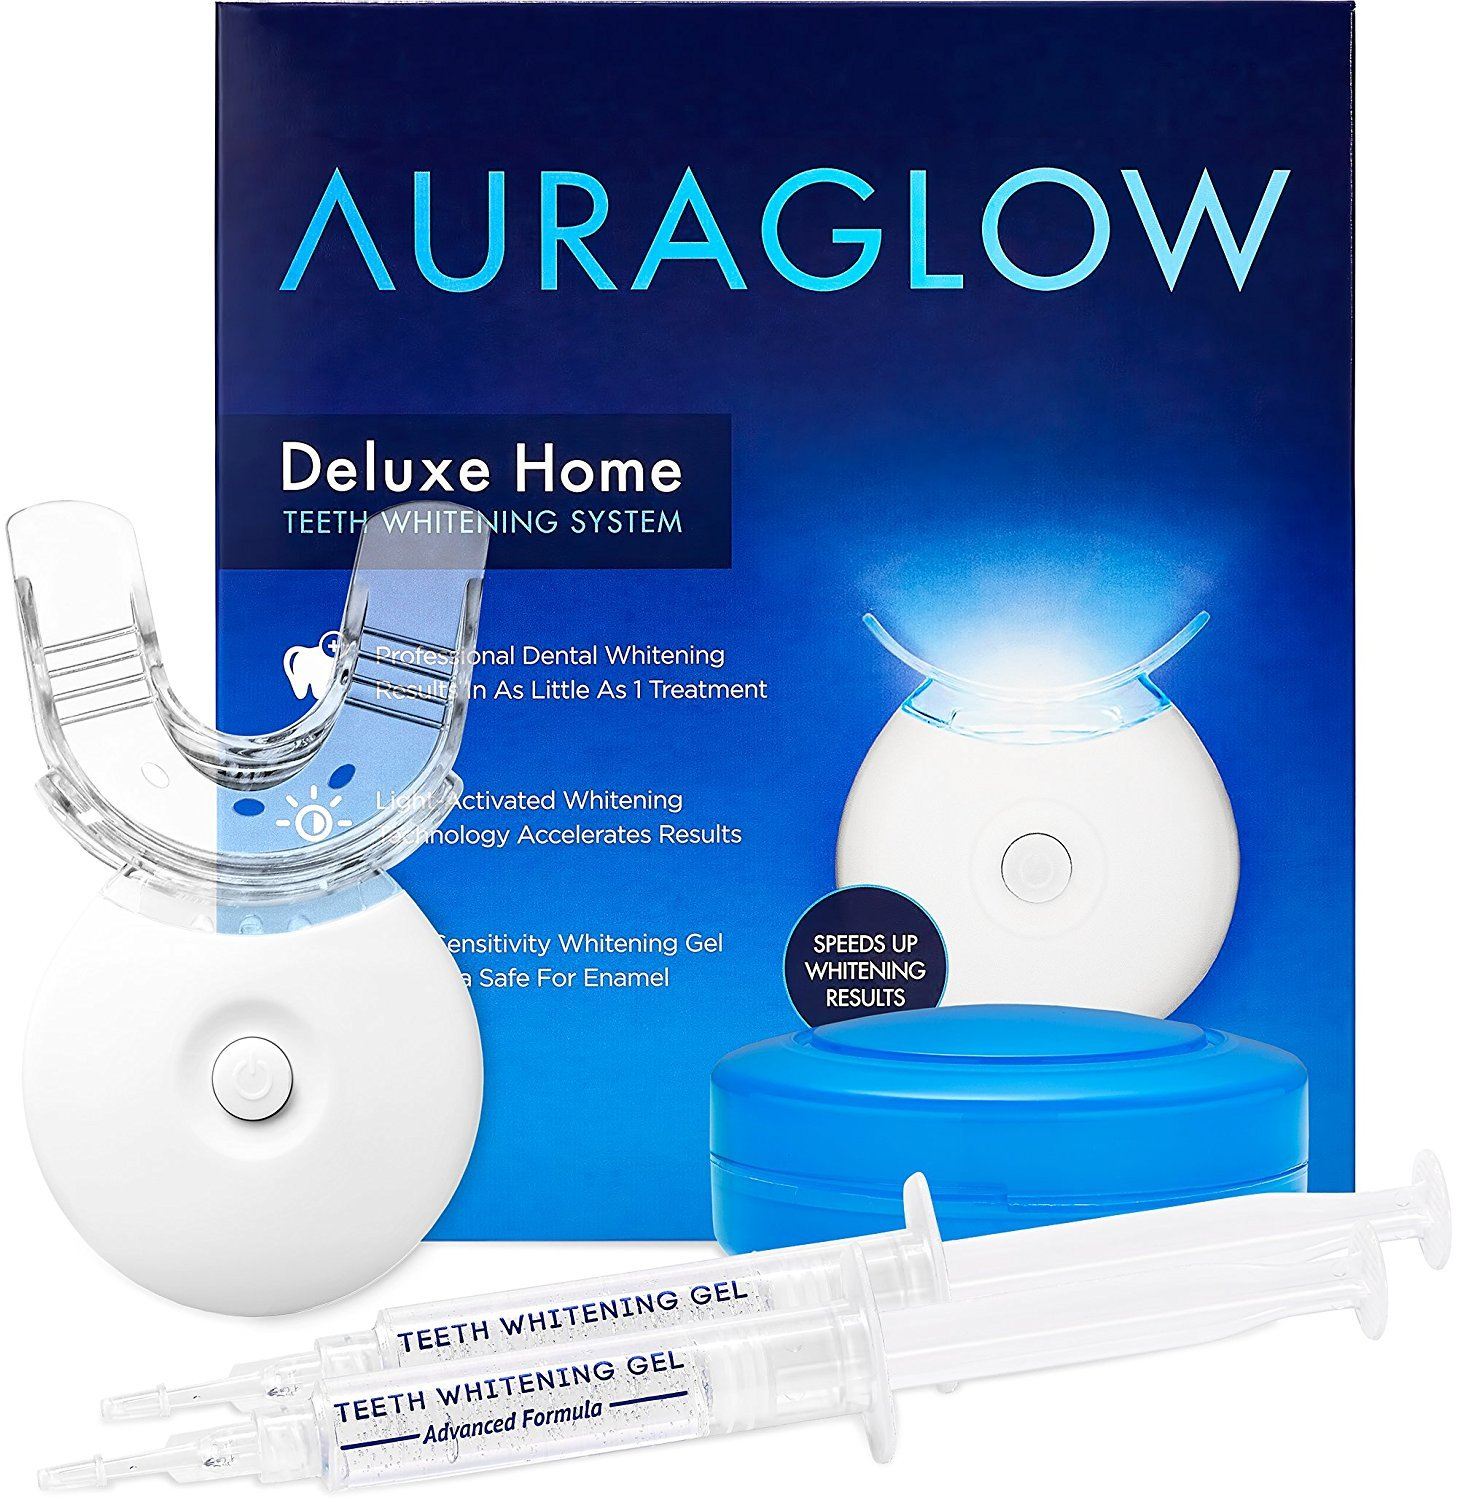 AuraGlow Teeth Whitening Kit, LED Light, 35% Carbamide Peroxide, (2) 5ml Gel Syringes, Tray and Case by AuraGlow